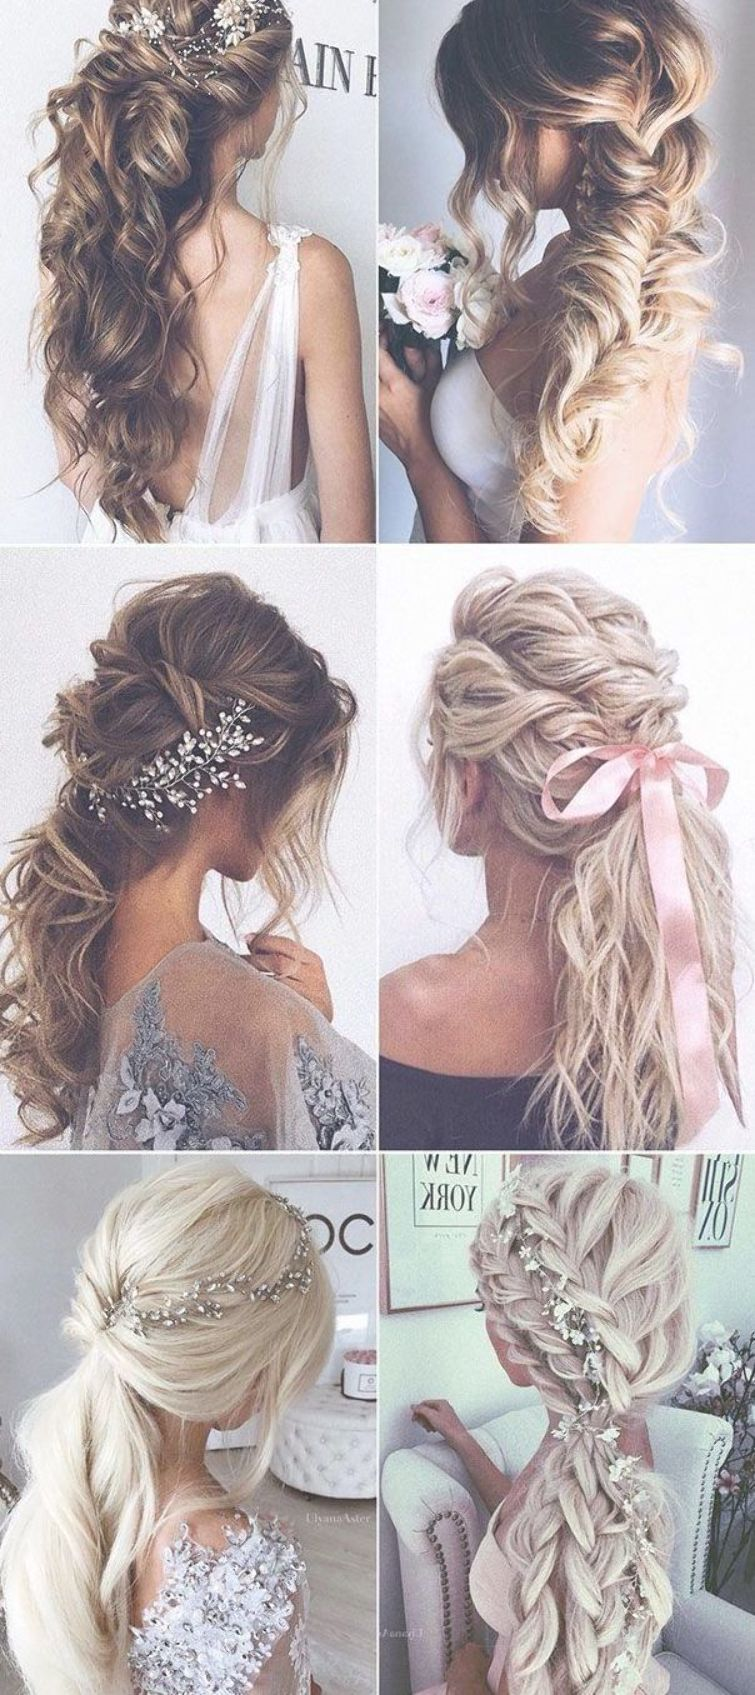 6 Trendy Thick Voluminous Messy Fishtail Braid Loose Double Braids Long Bridal Hairstyle F Fishtail Hairstyles Long Bridal Hair Braided Hairstyles For Wedding